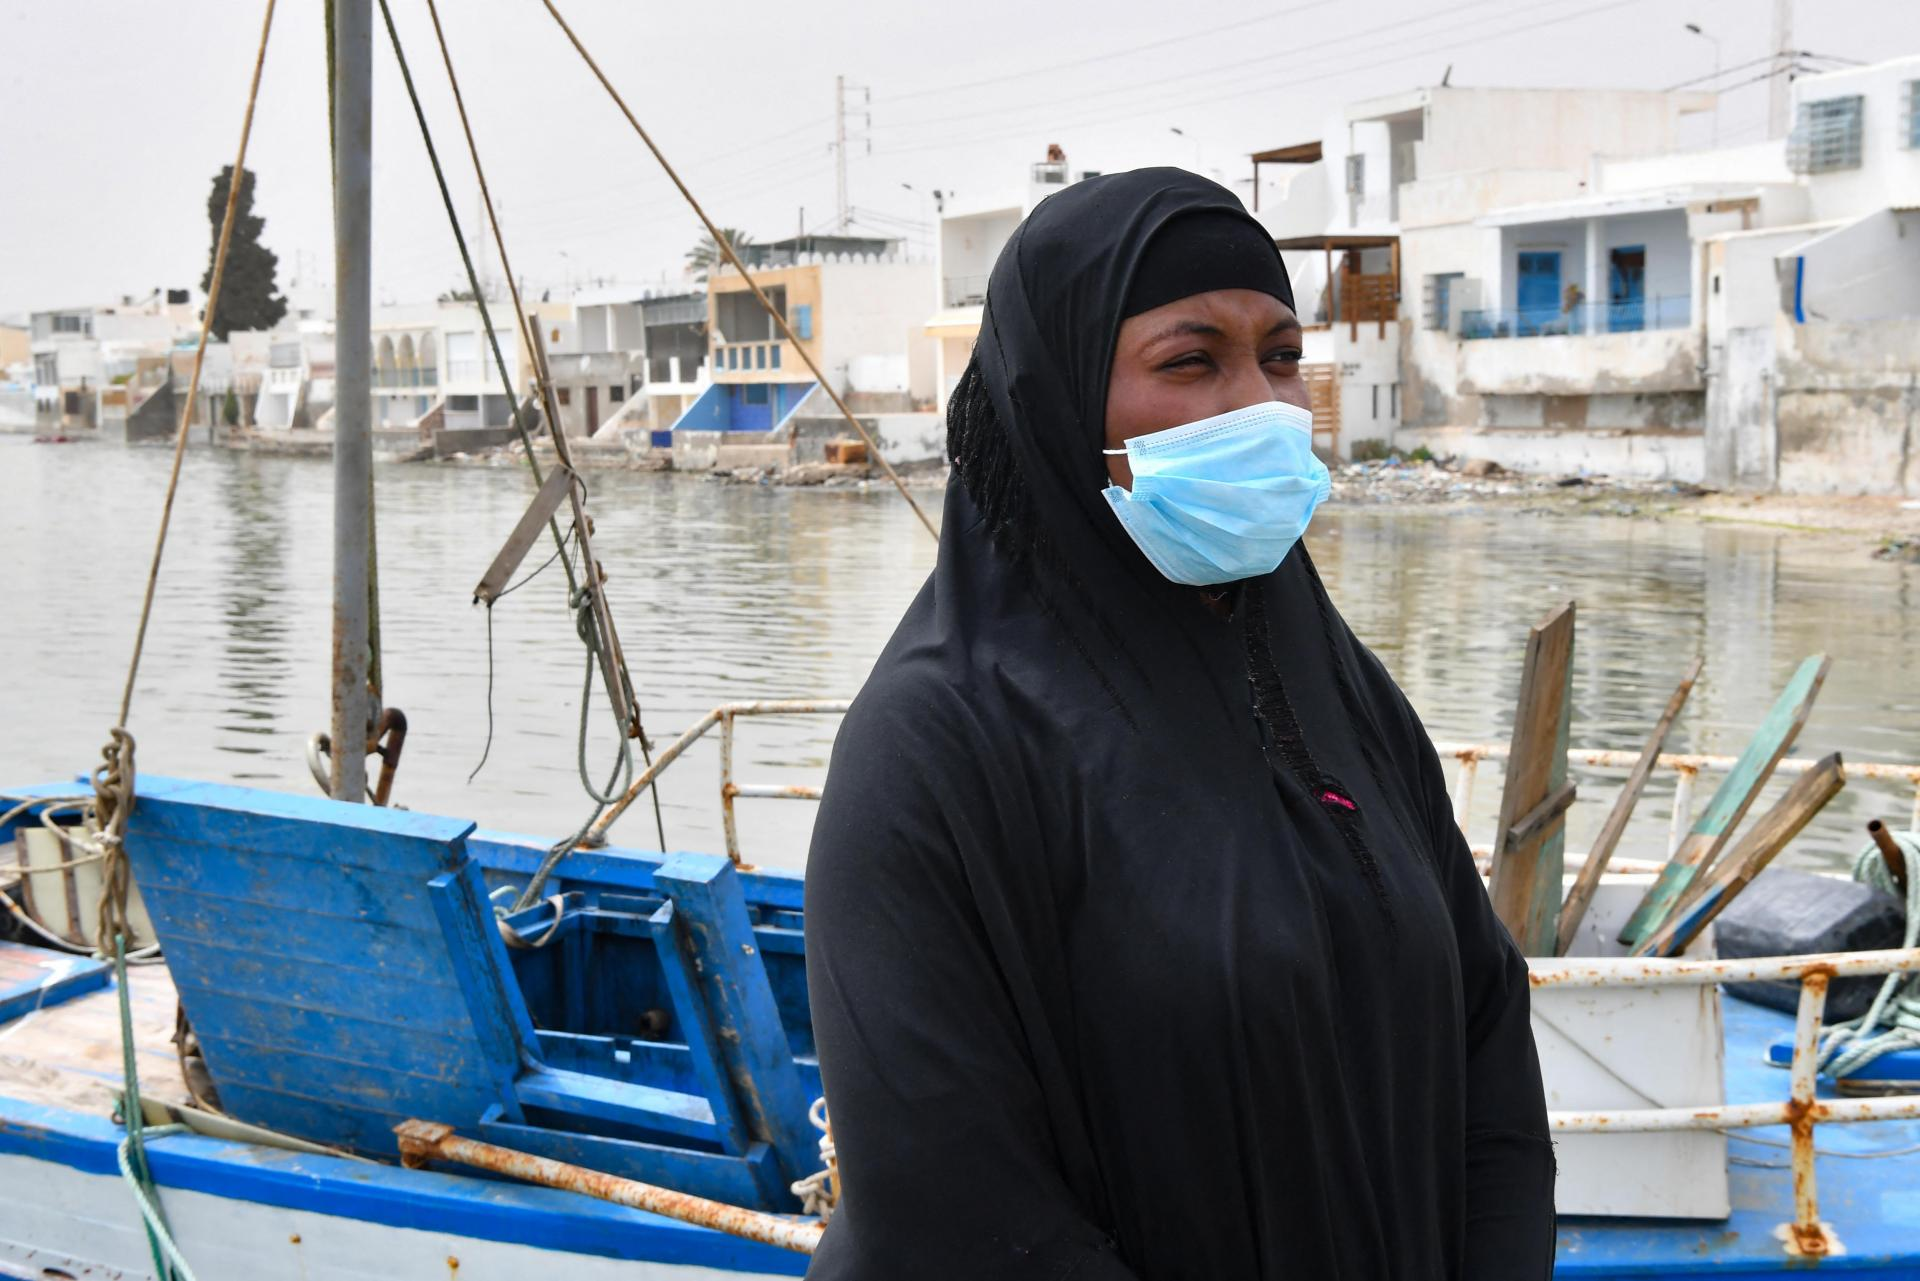 Aminata Traoure survived a shipwreck in early March while trying to reach Europe.